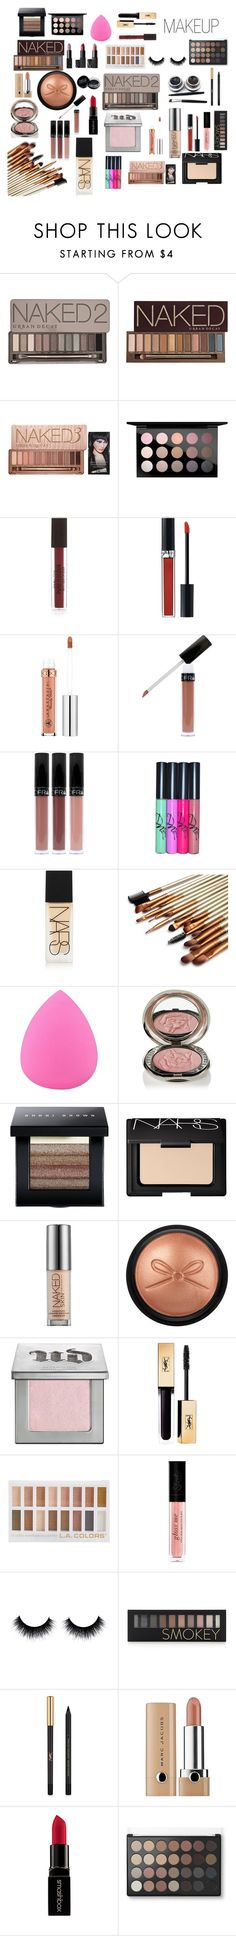 """""""MAKEUP"""" by amp31001 on Polyvore featuring beauty, Urban Decay, MAC Cosmetics, New Look, Christian Dior, NARS Cosmetics, Zodaca, Chantecaille, Bobbi Brown Cosmetics and Ciaté"""